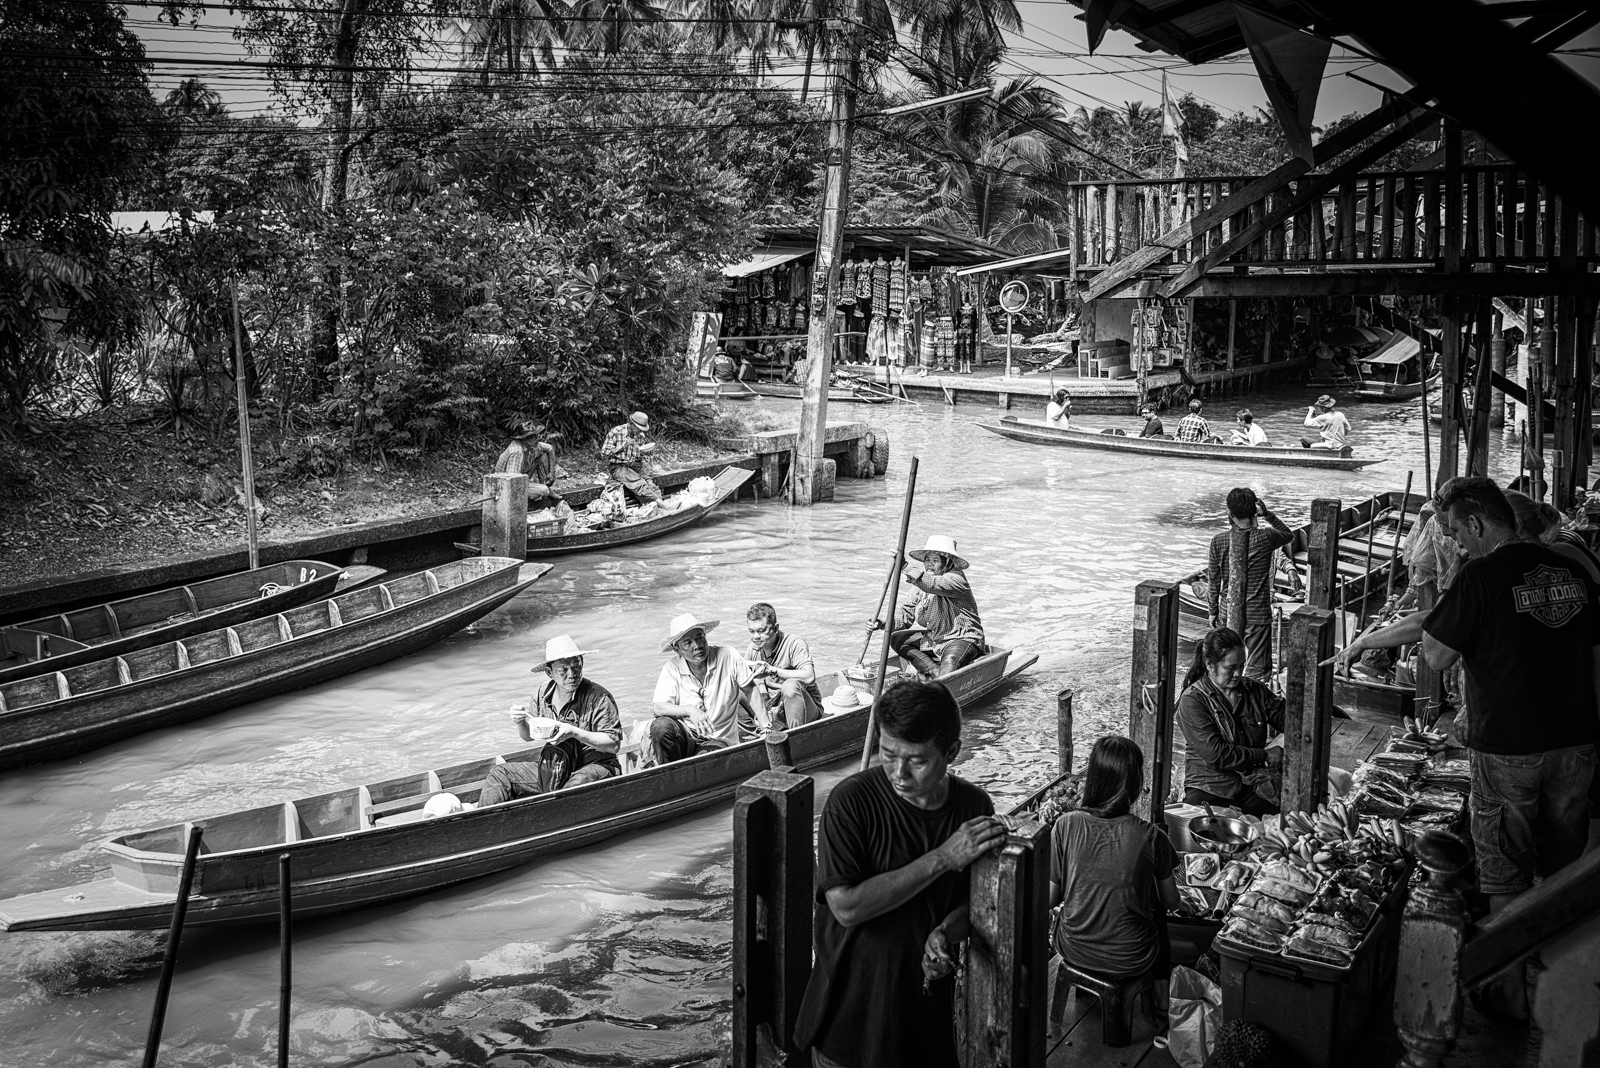 Life on the Bangkok Floating Market